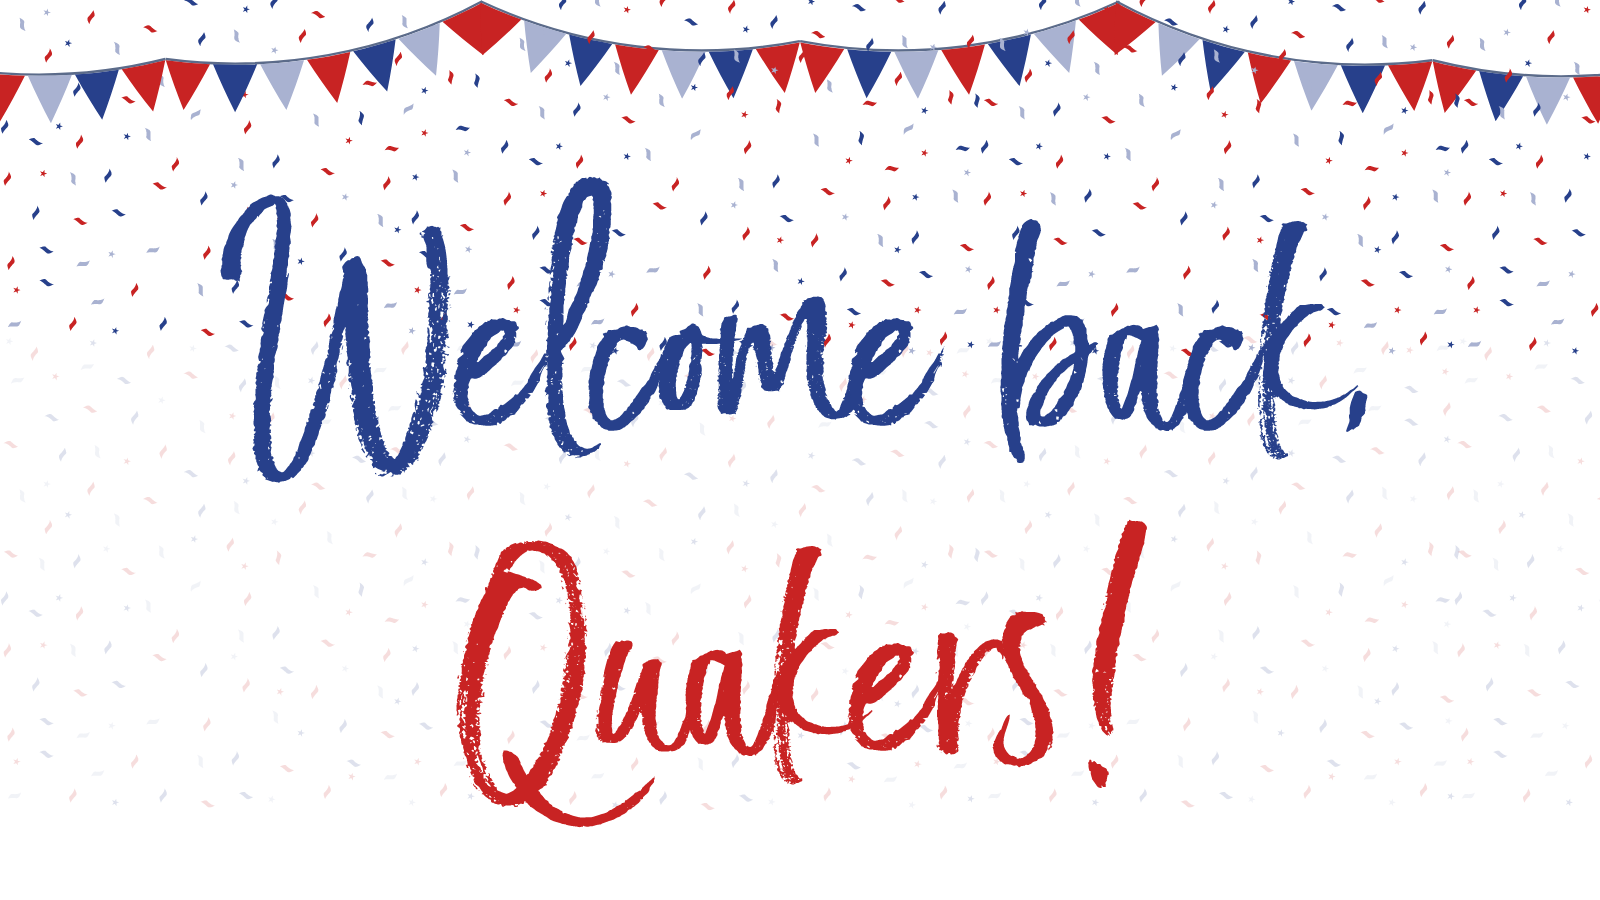 Welcome back, Quakers!